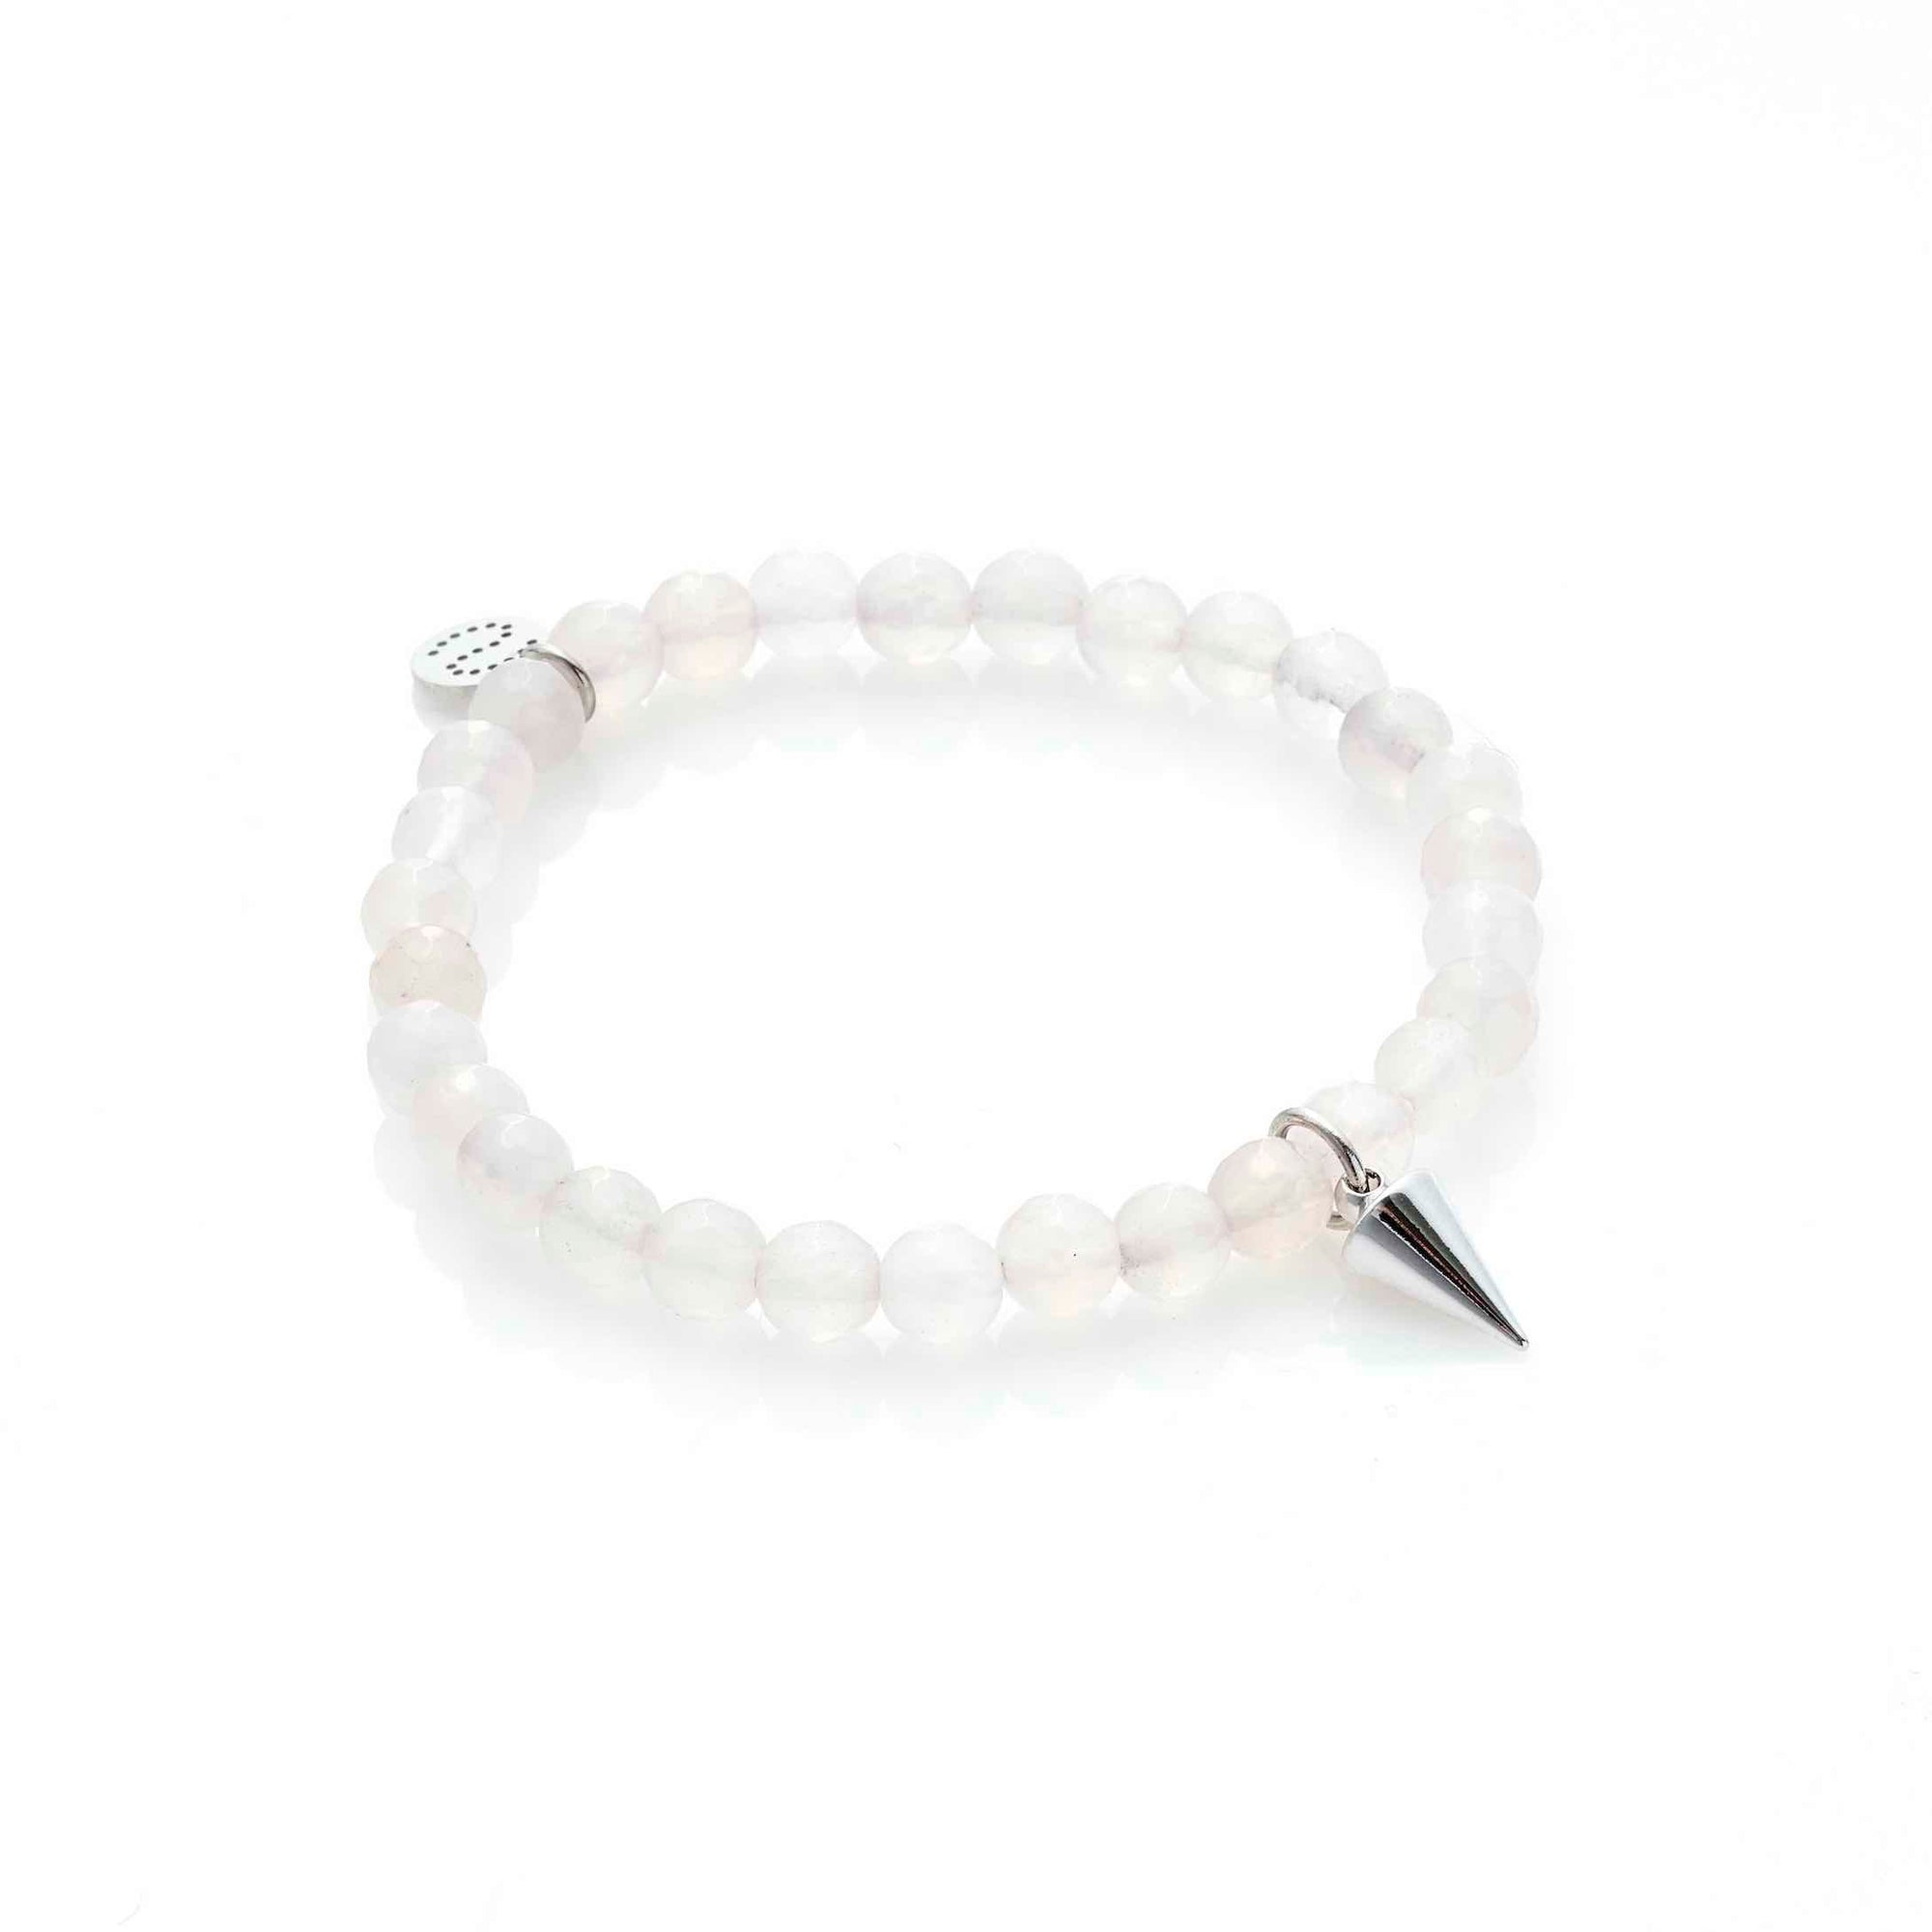 Silk & Steel Love Hate rose quartz silver and spike bracelet